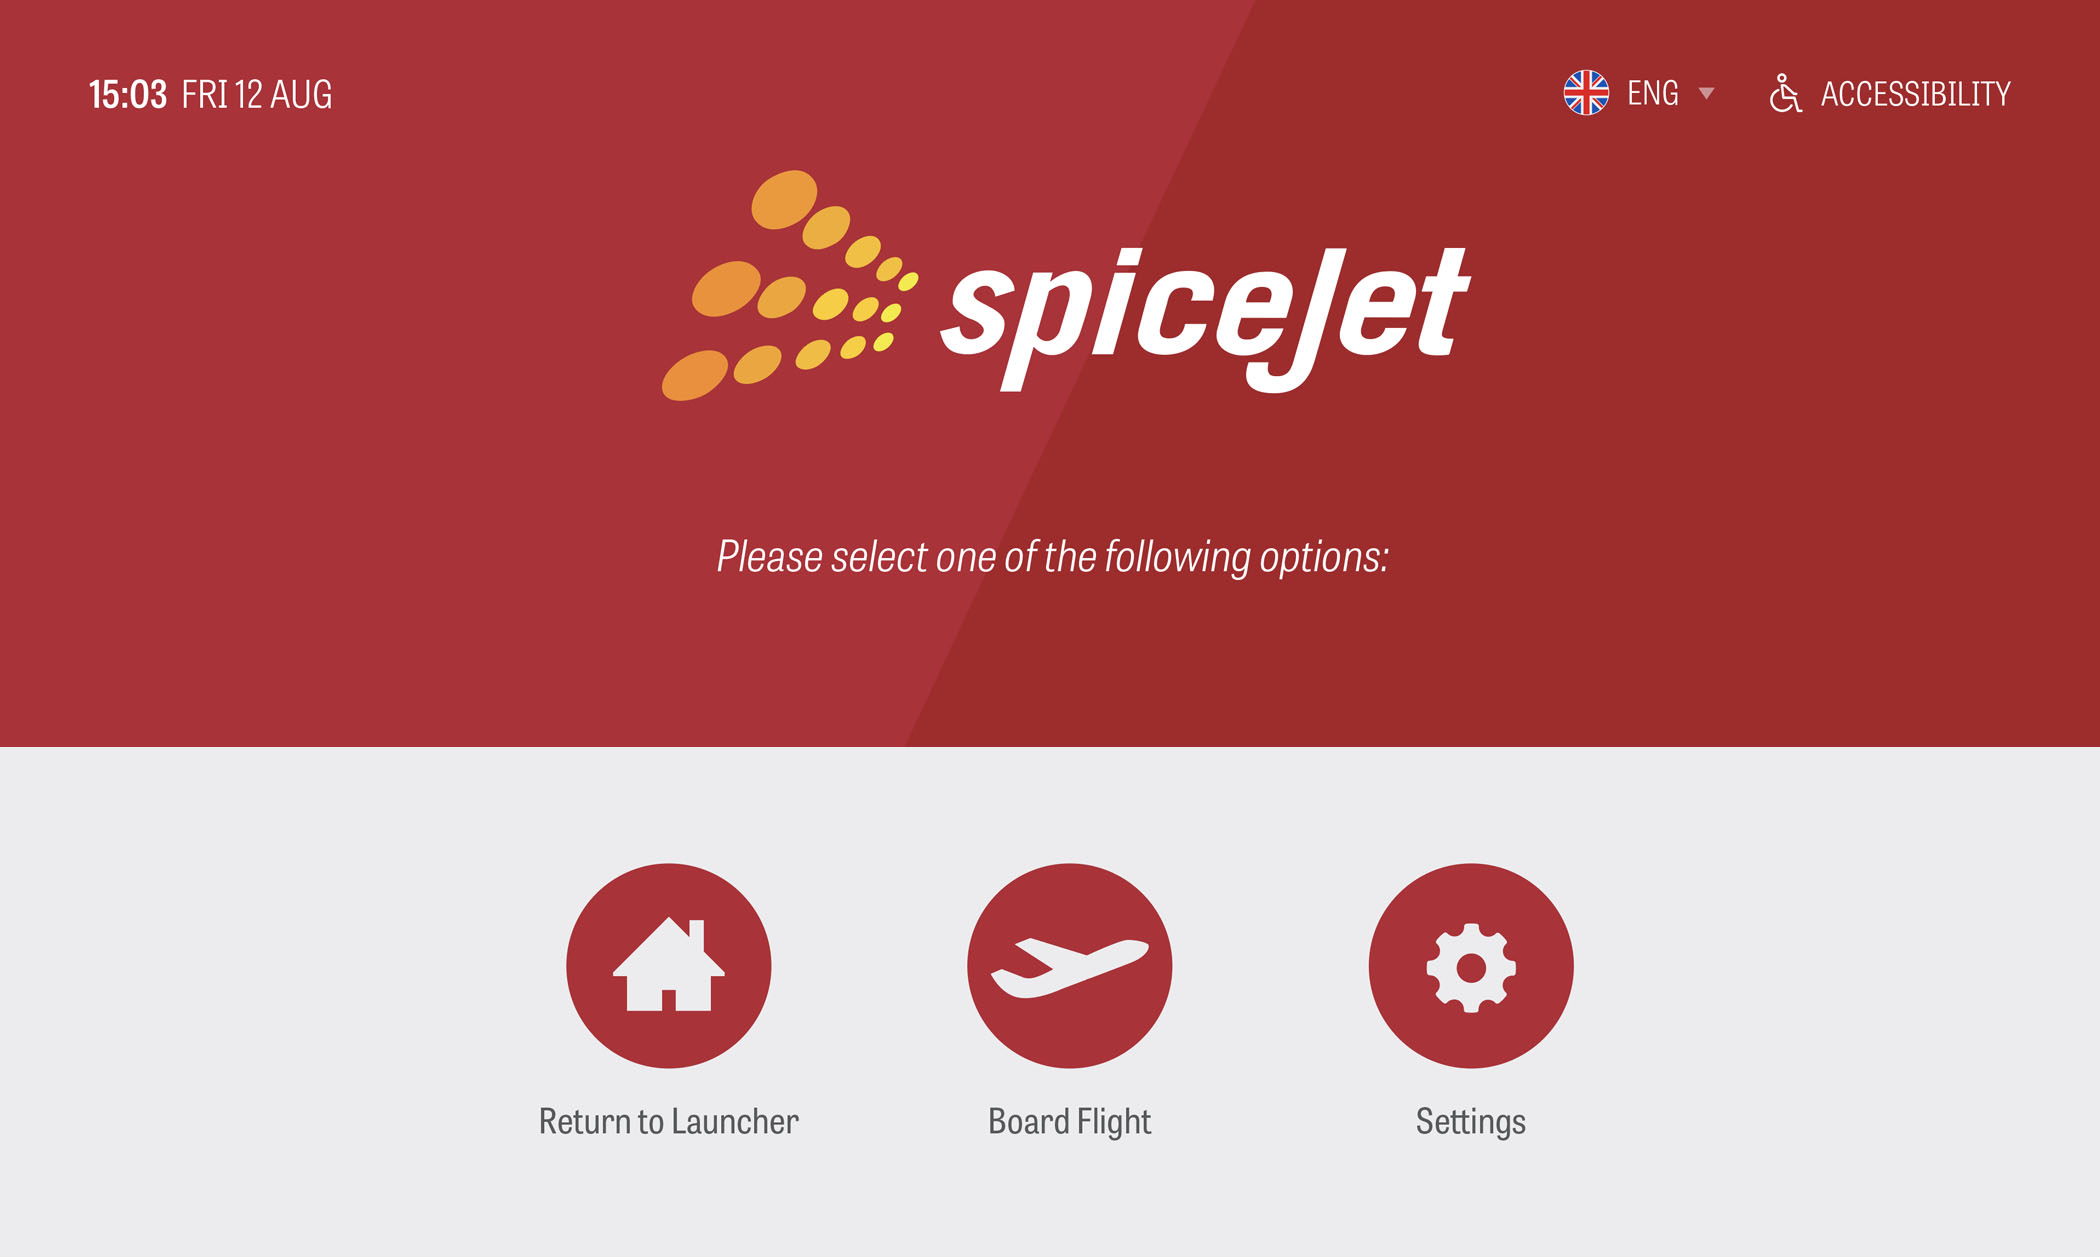 SpiceJet Service Desk Application Screen 2